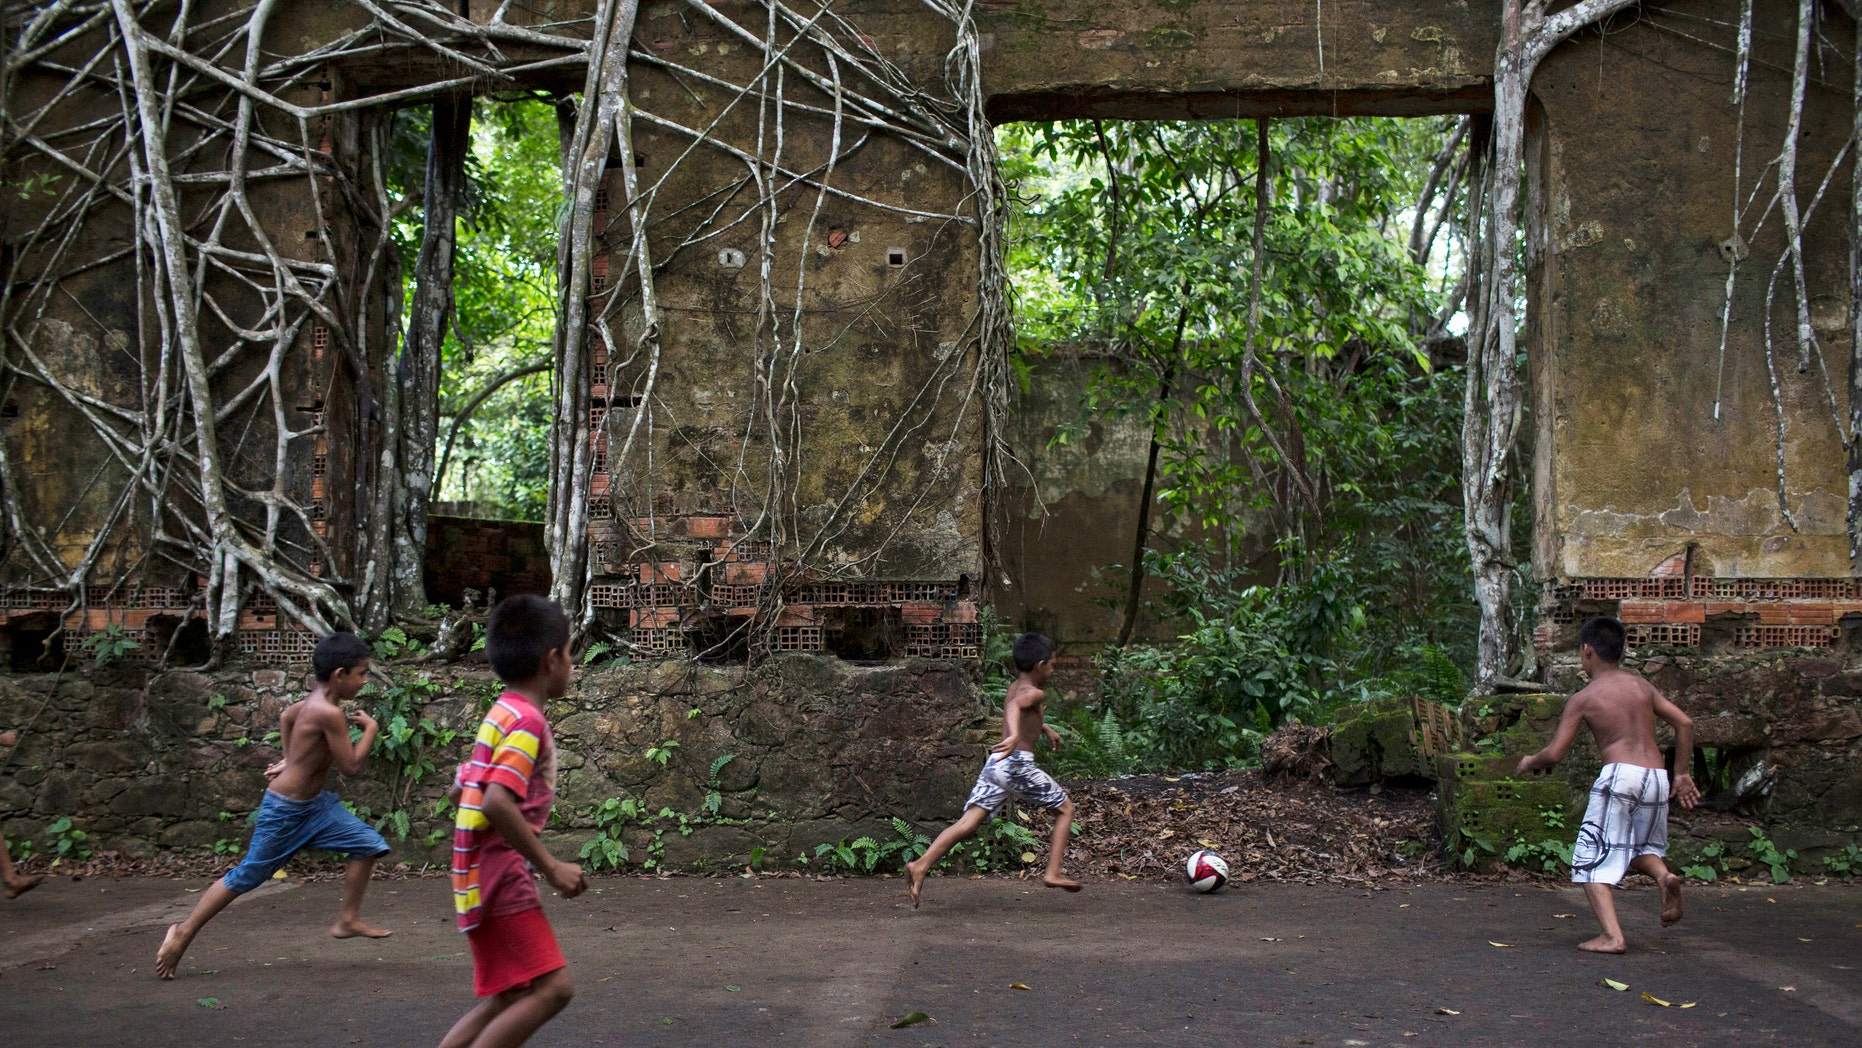 In this May 21, 2014 photo, Children play soccer in the ruins of Paricatuba, near Manaus, Brazil.